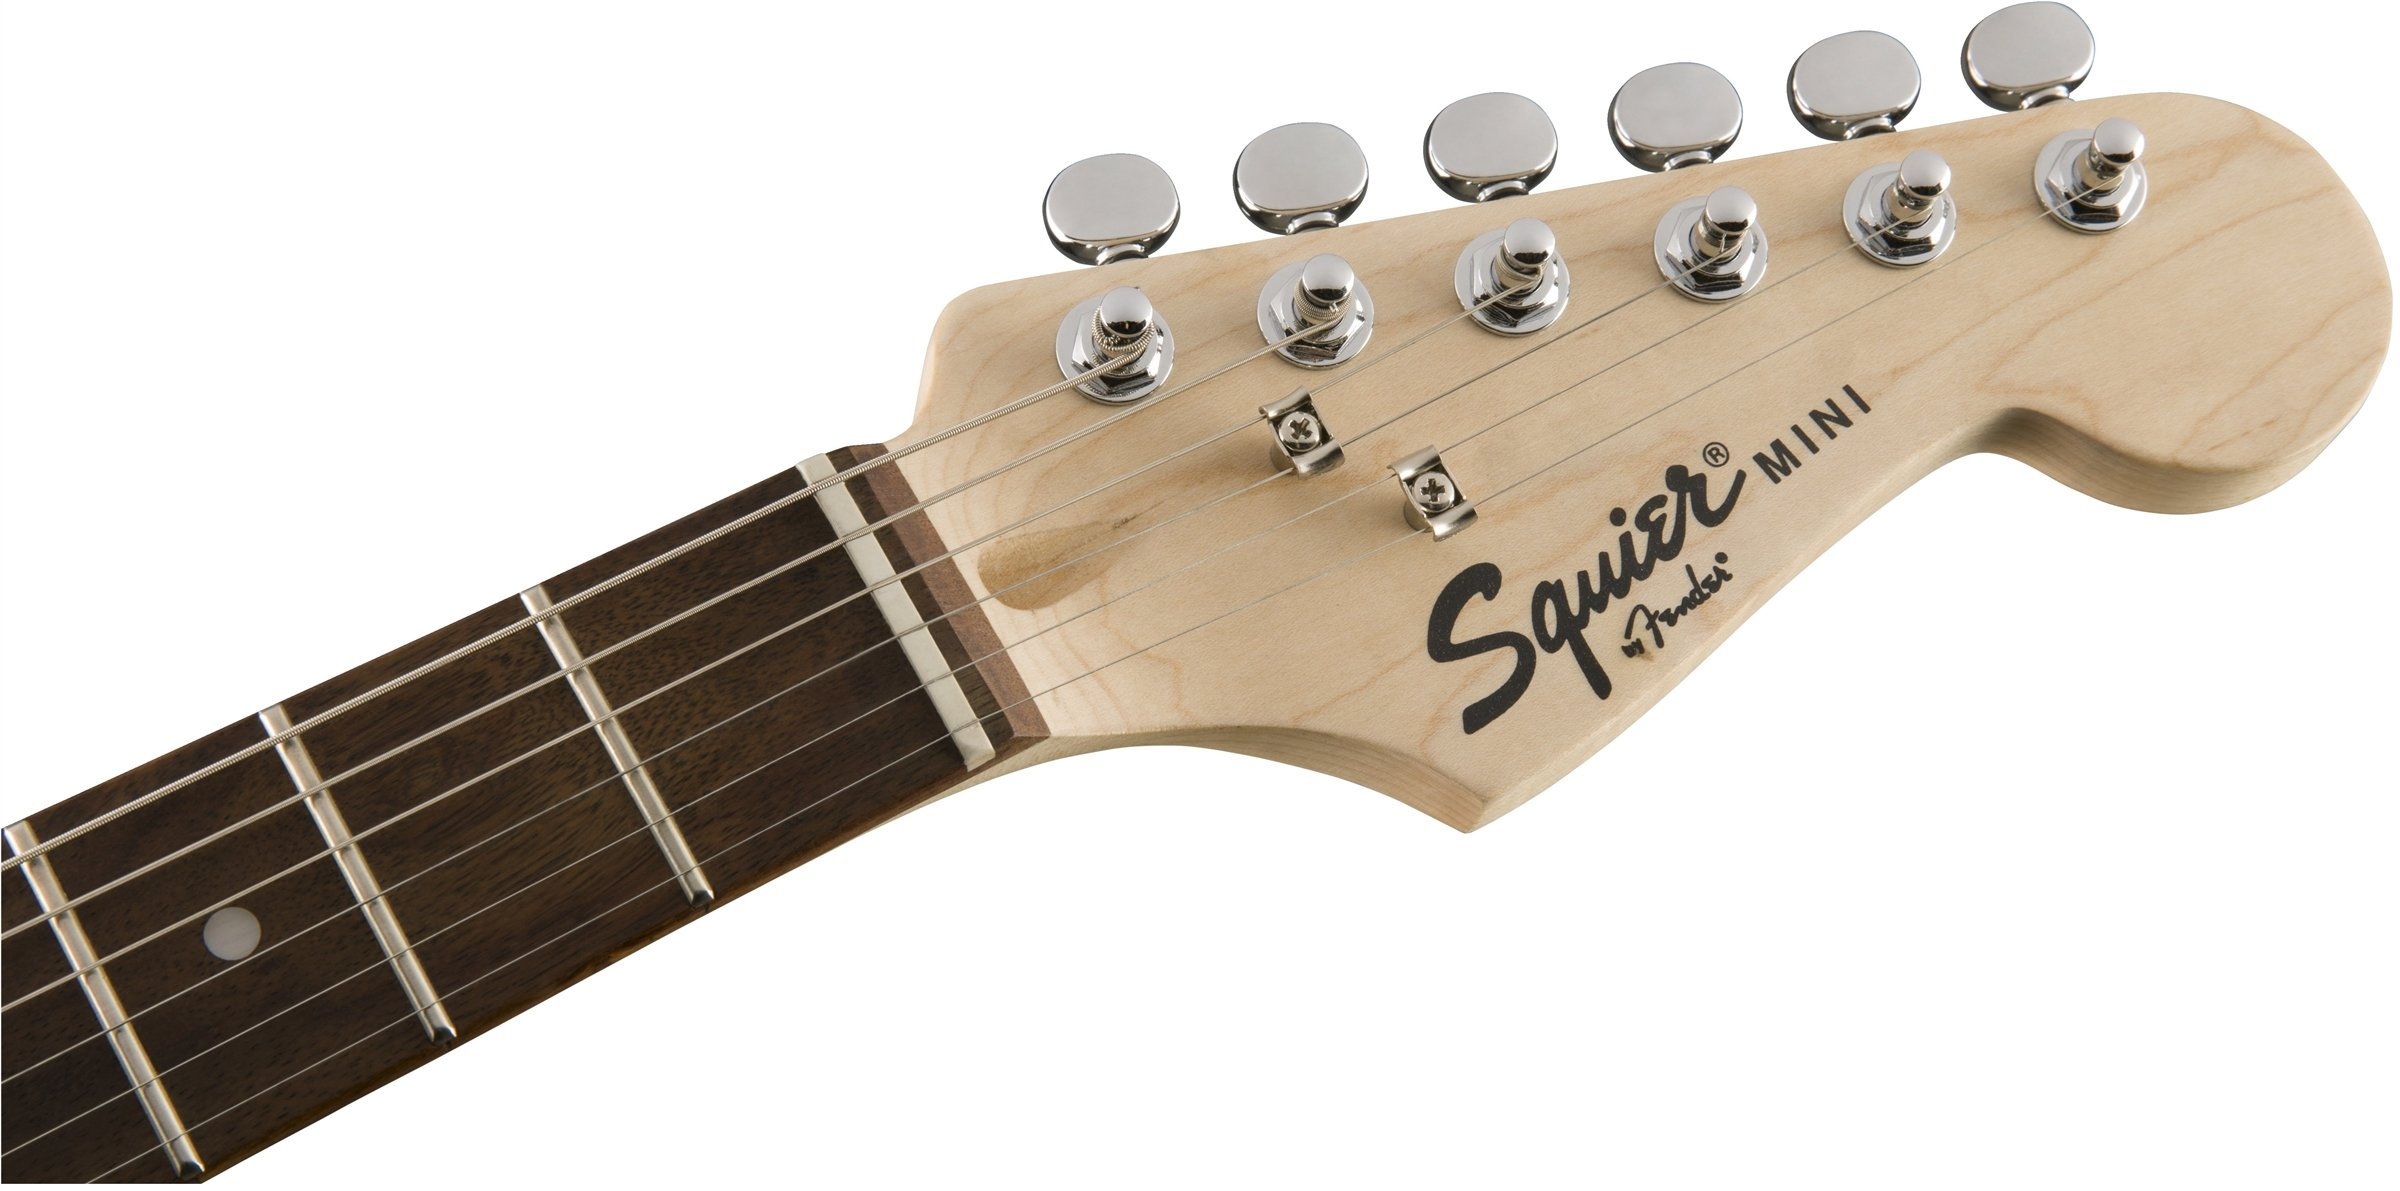 Squier by Fender Mini Stratocaster Beginner Electric Guitar - Indian Laurel Fingerboard - Torino Red by Fender (Image #5)